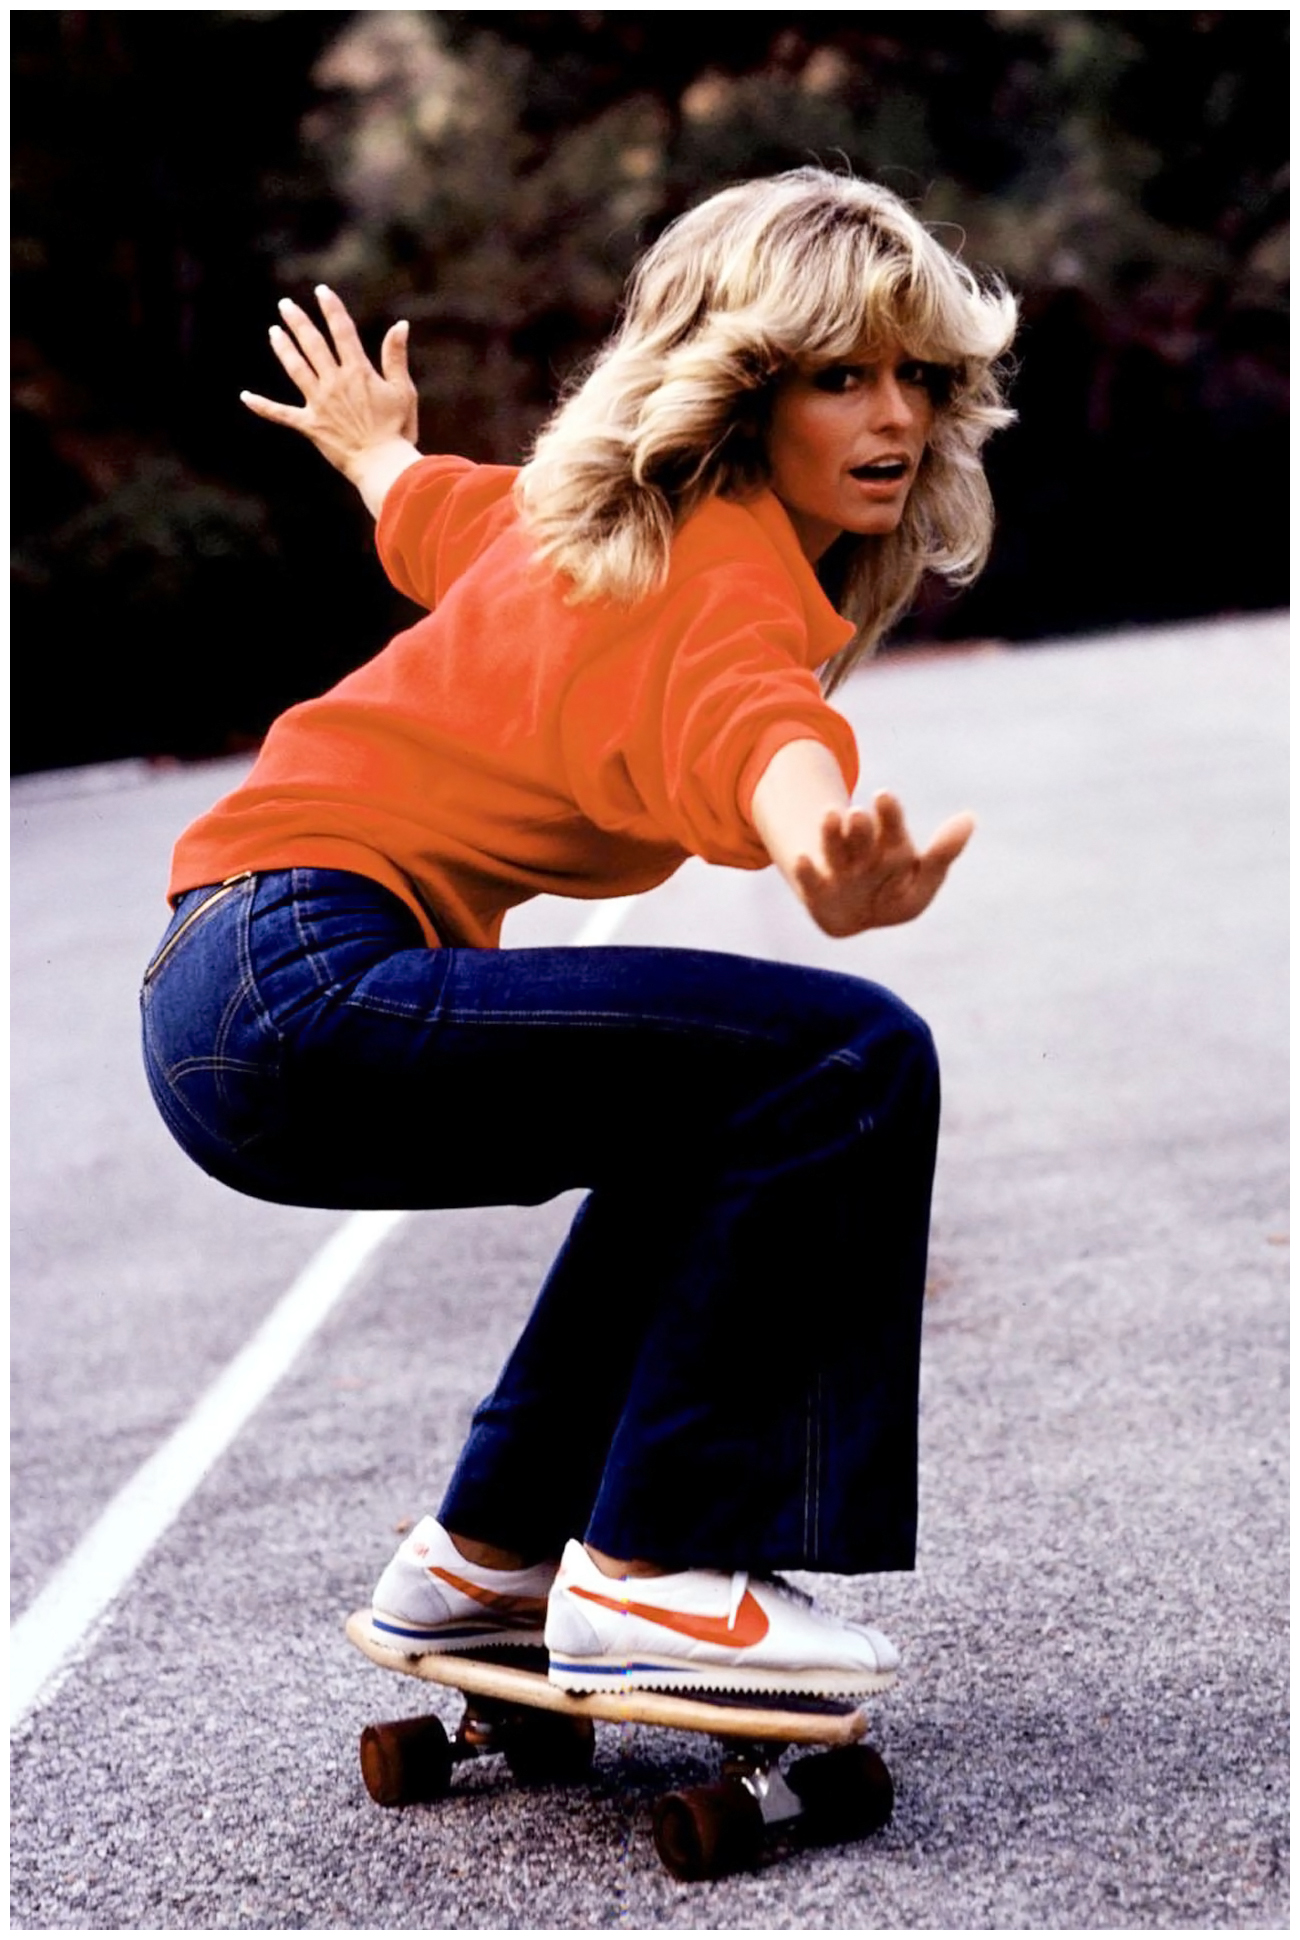 former-charlie_s-angel-farrah-fawcett-wore-her-denim-at-its-youthful-breezy-best-and-made-fitted-flared-jeans-de-rigour-for-all-seventies-girls